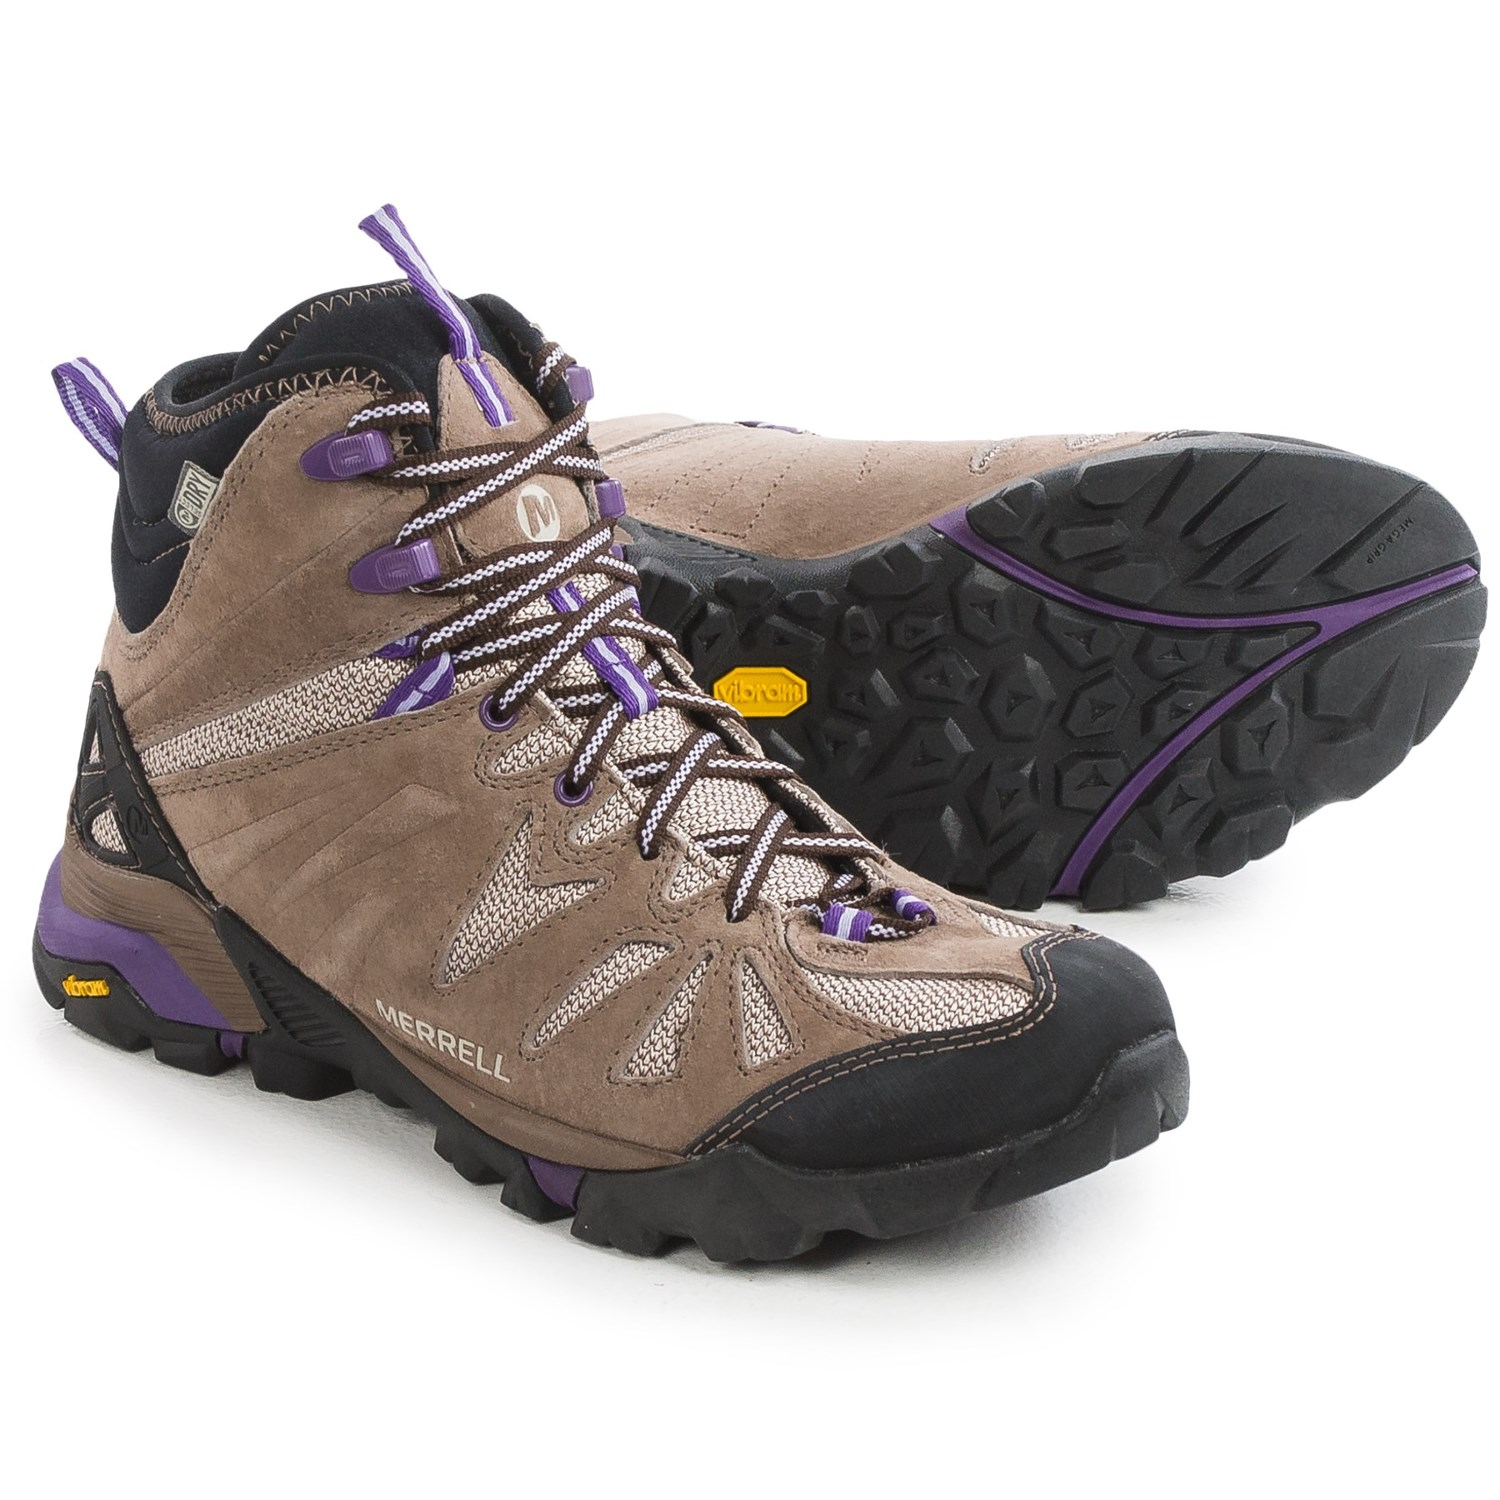 Merrell Capra Mid Hiking Boots (For Women) 104YW - Save 47%